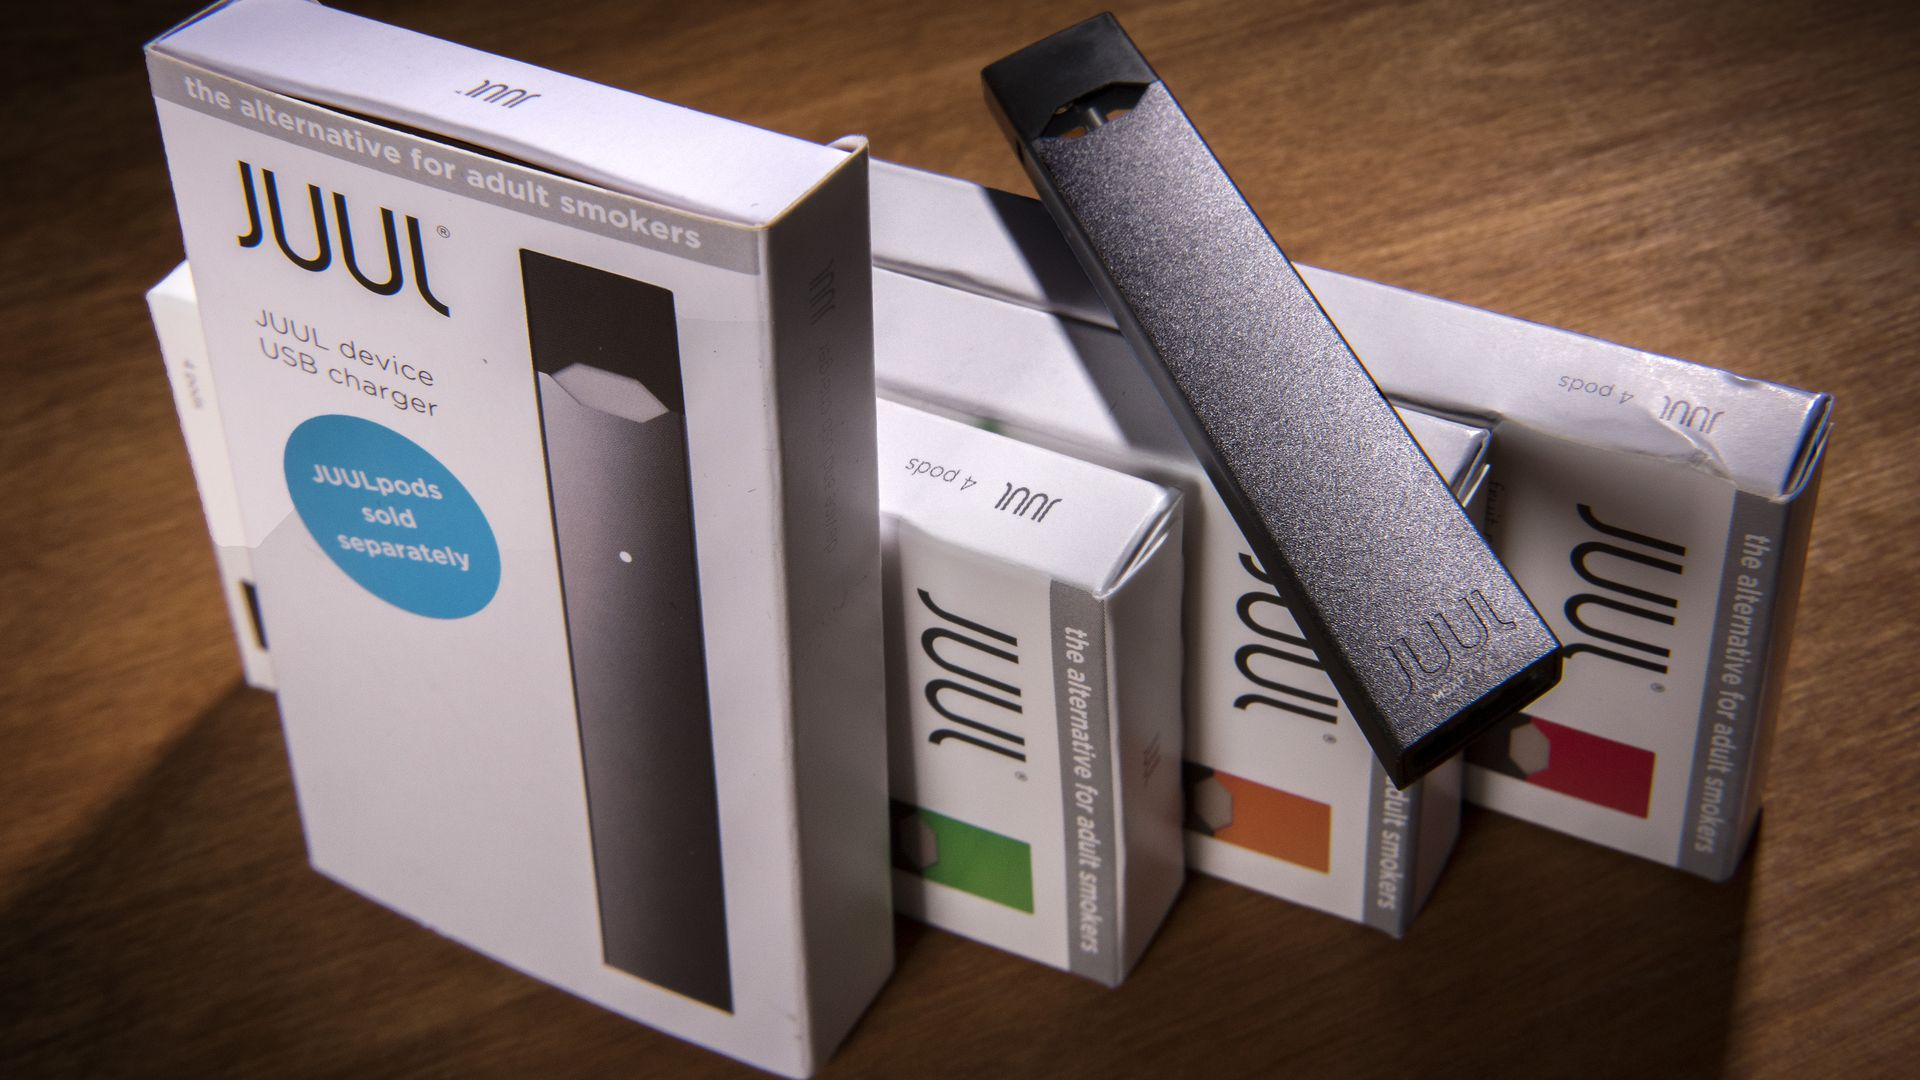 A picture of Juul products.